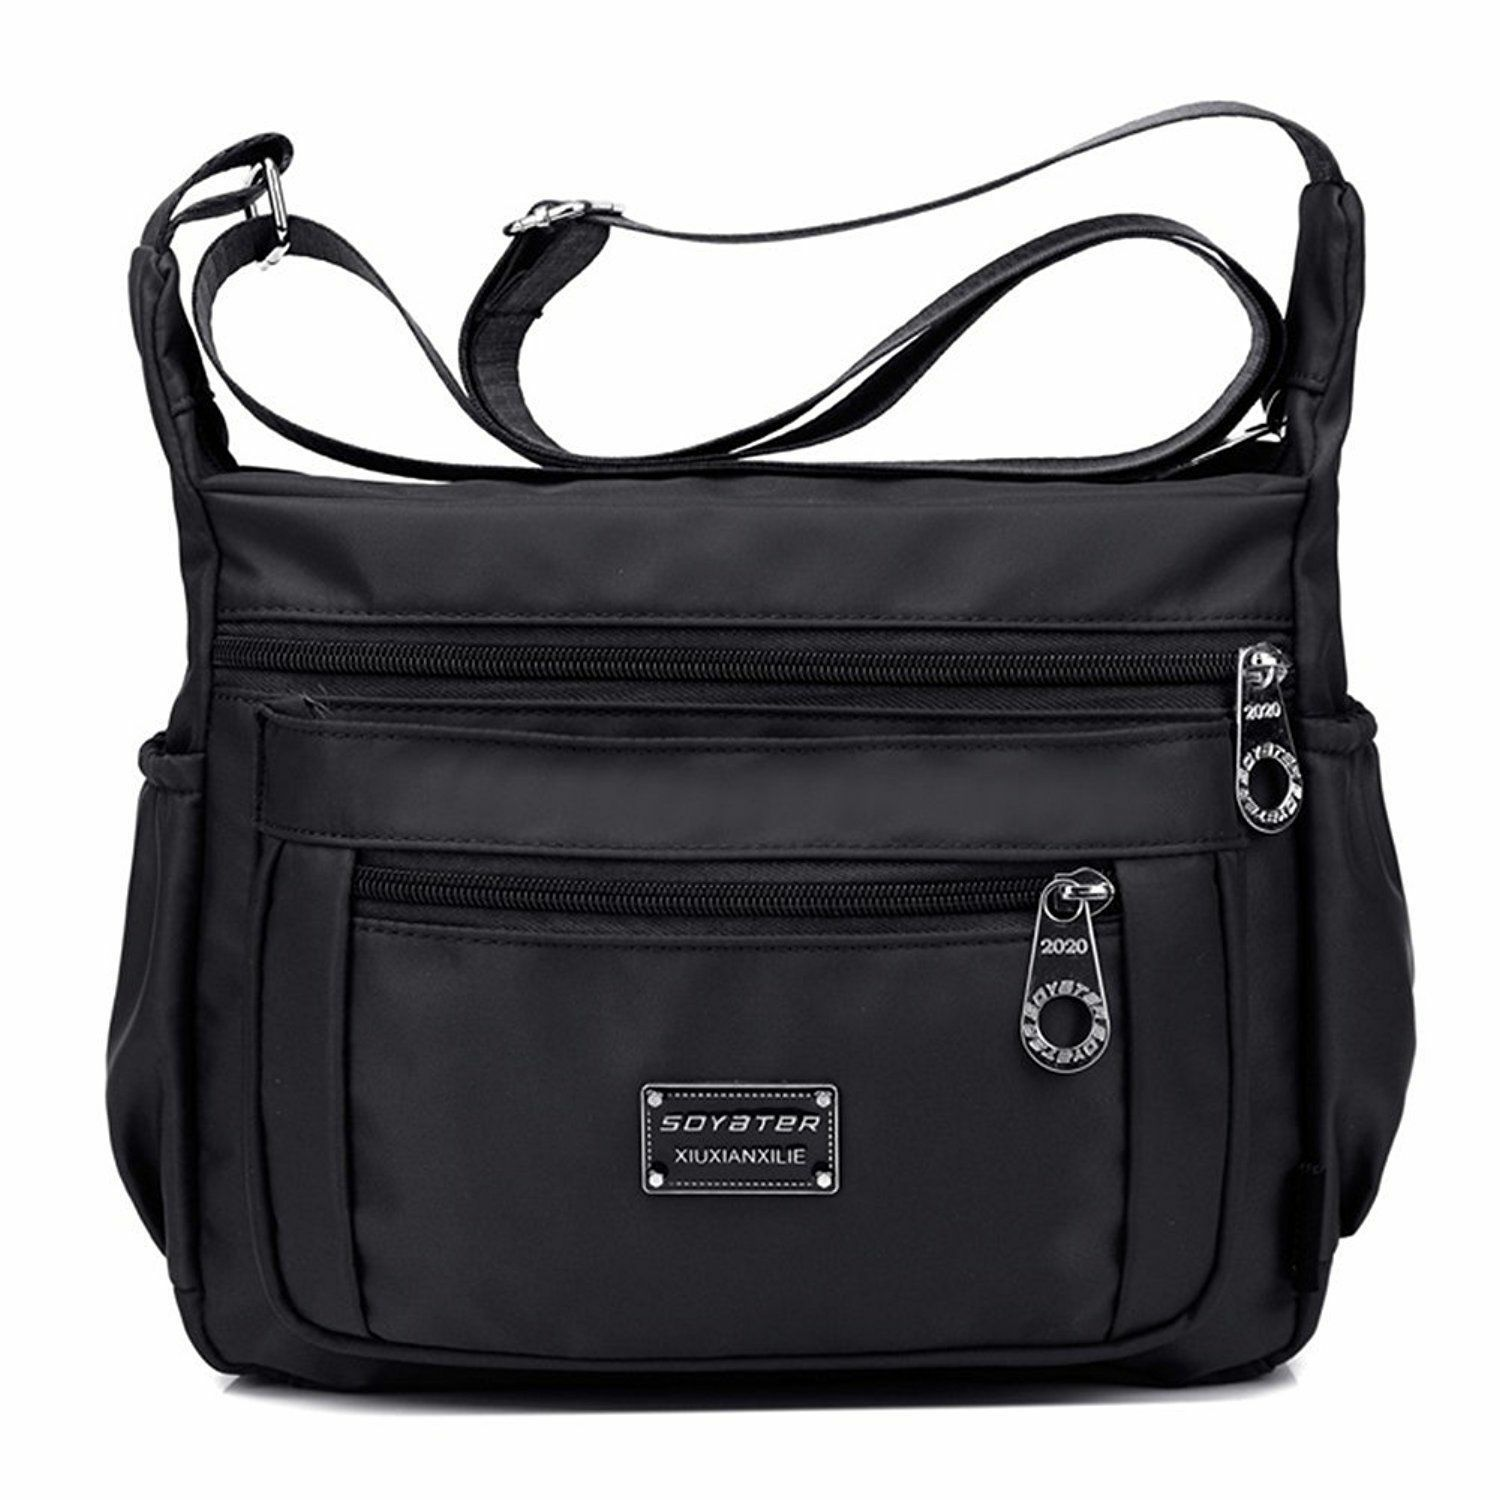 Soyater Nylon Crossbody Bags for Women with Pockets | Choose